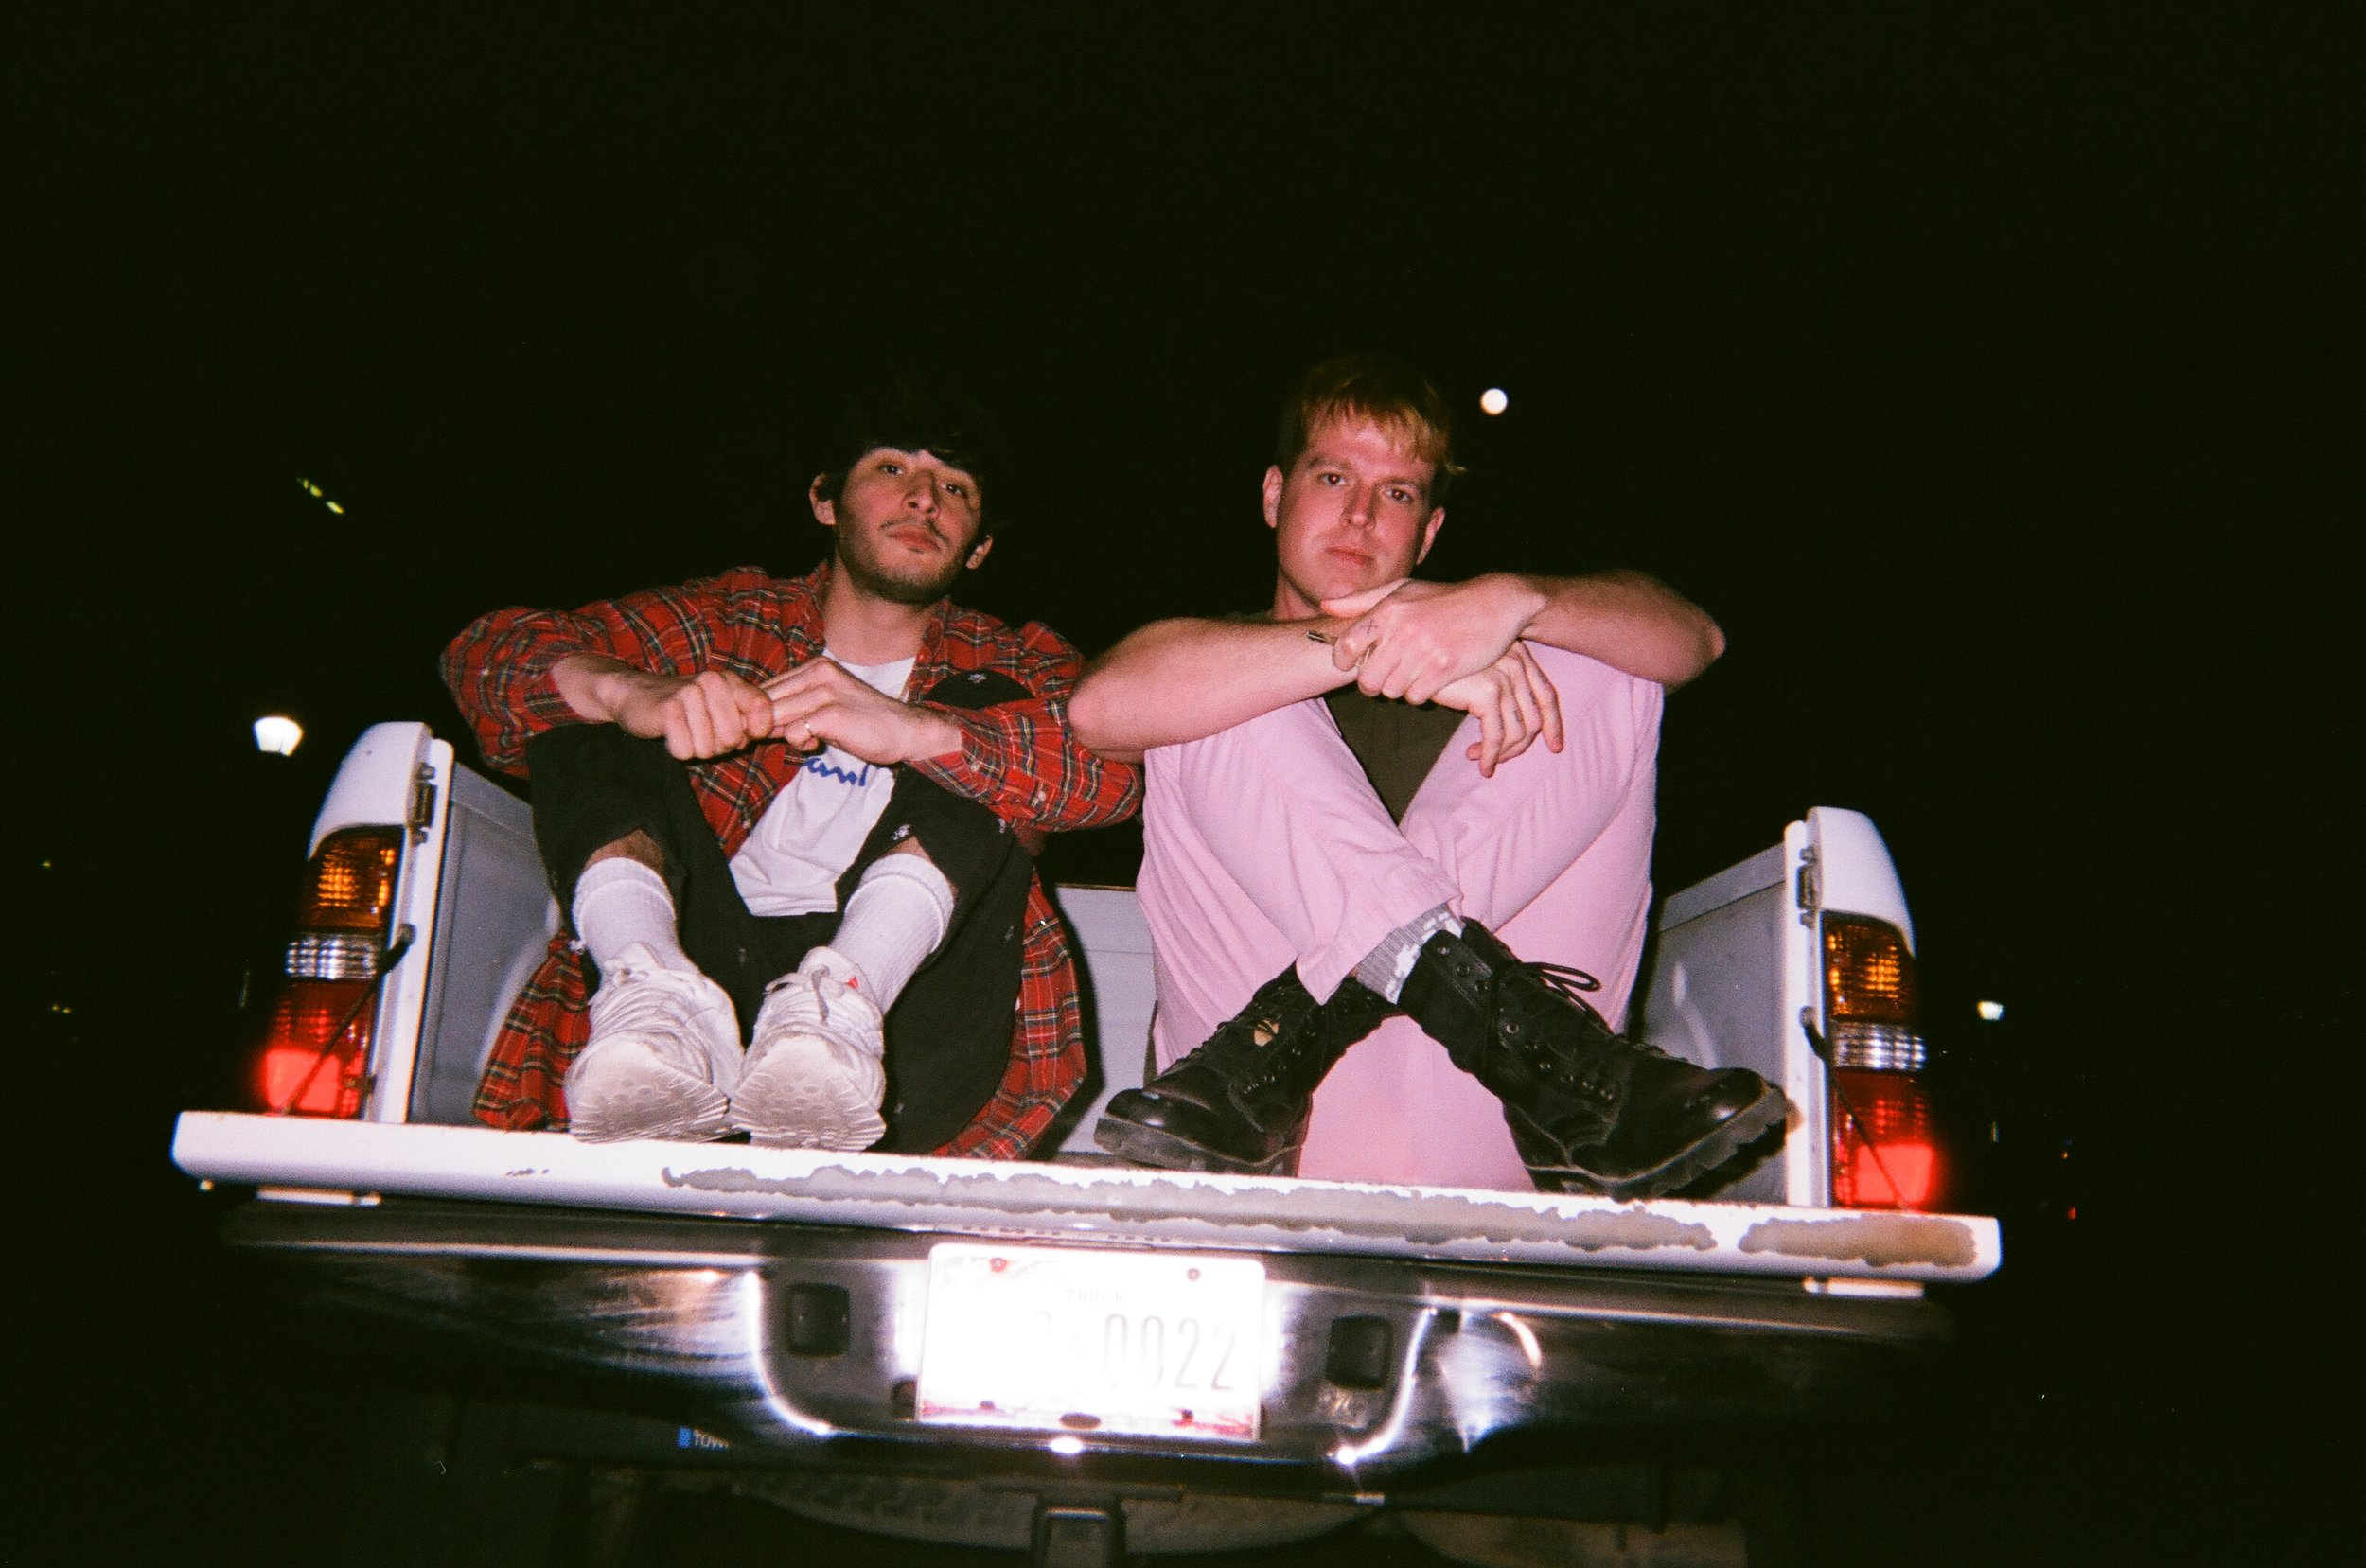 Dylan and myself in the back of the truck we drove around in for SXSW. Can't wait til next year.